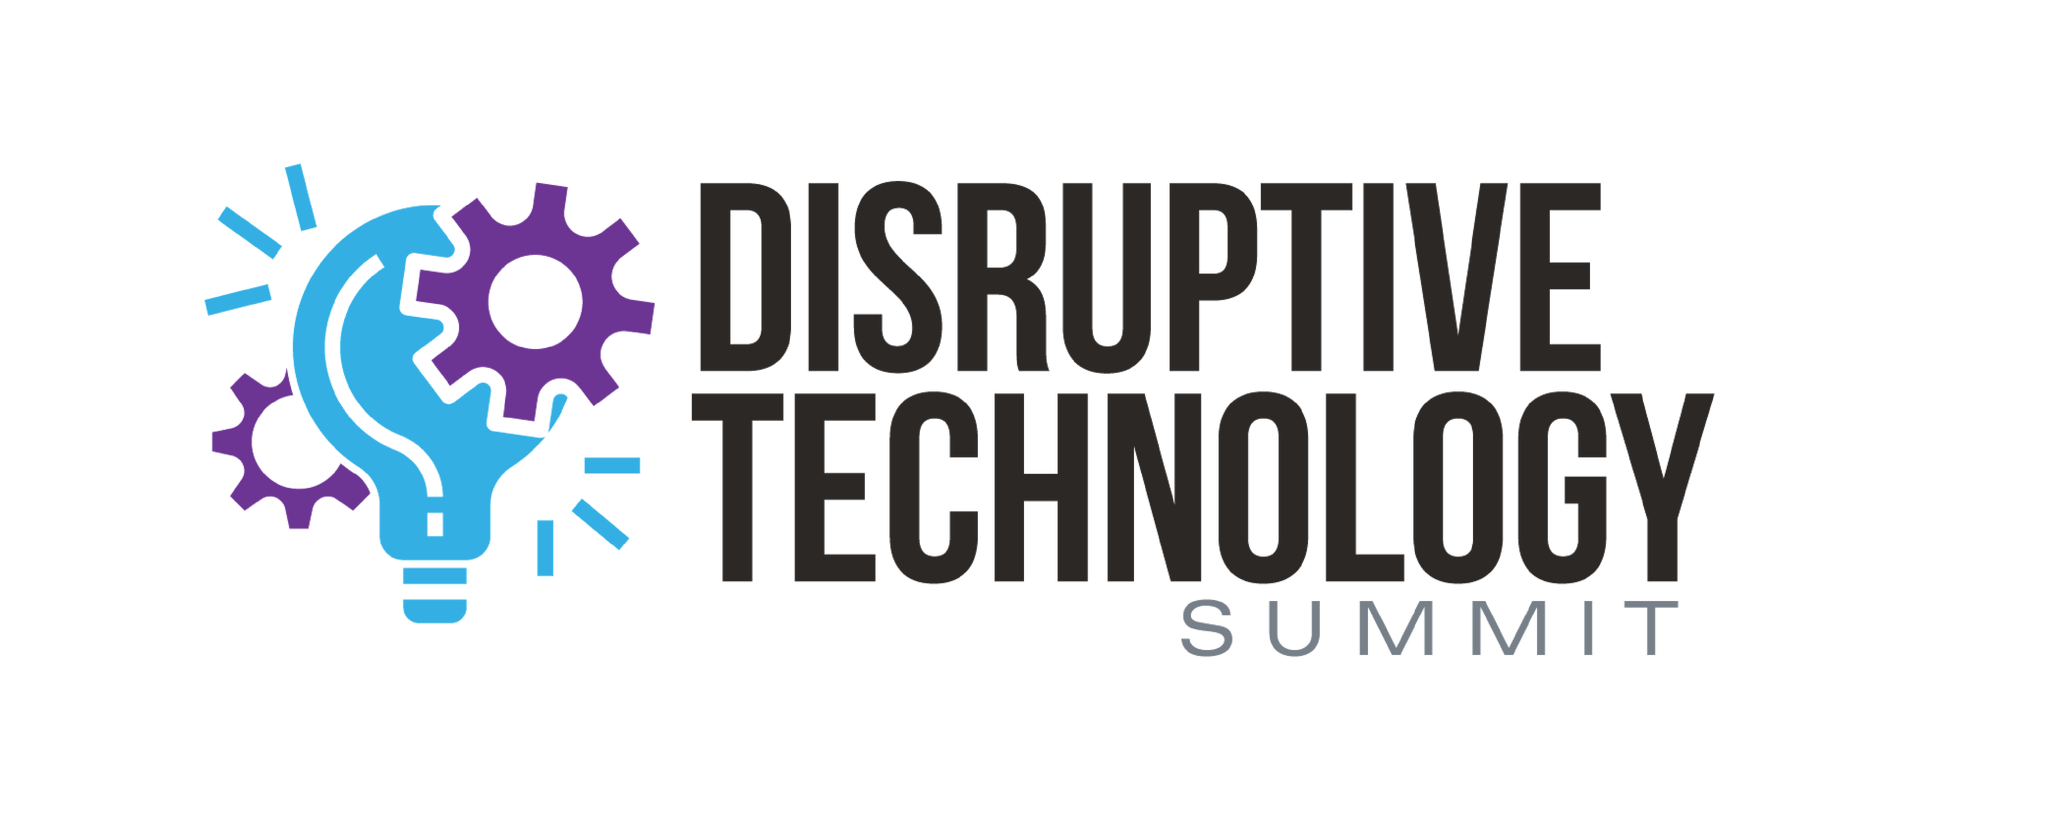 DISRUPTIVE TECHNOLOGY SUMMIT